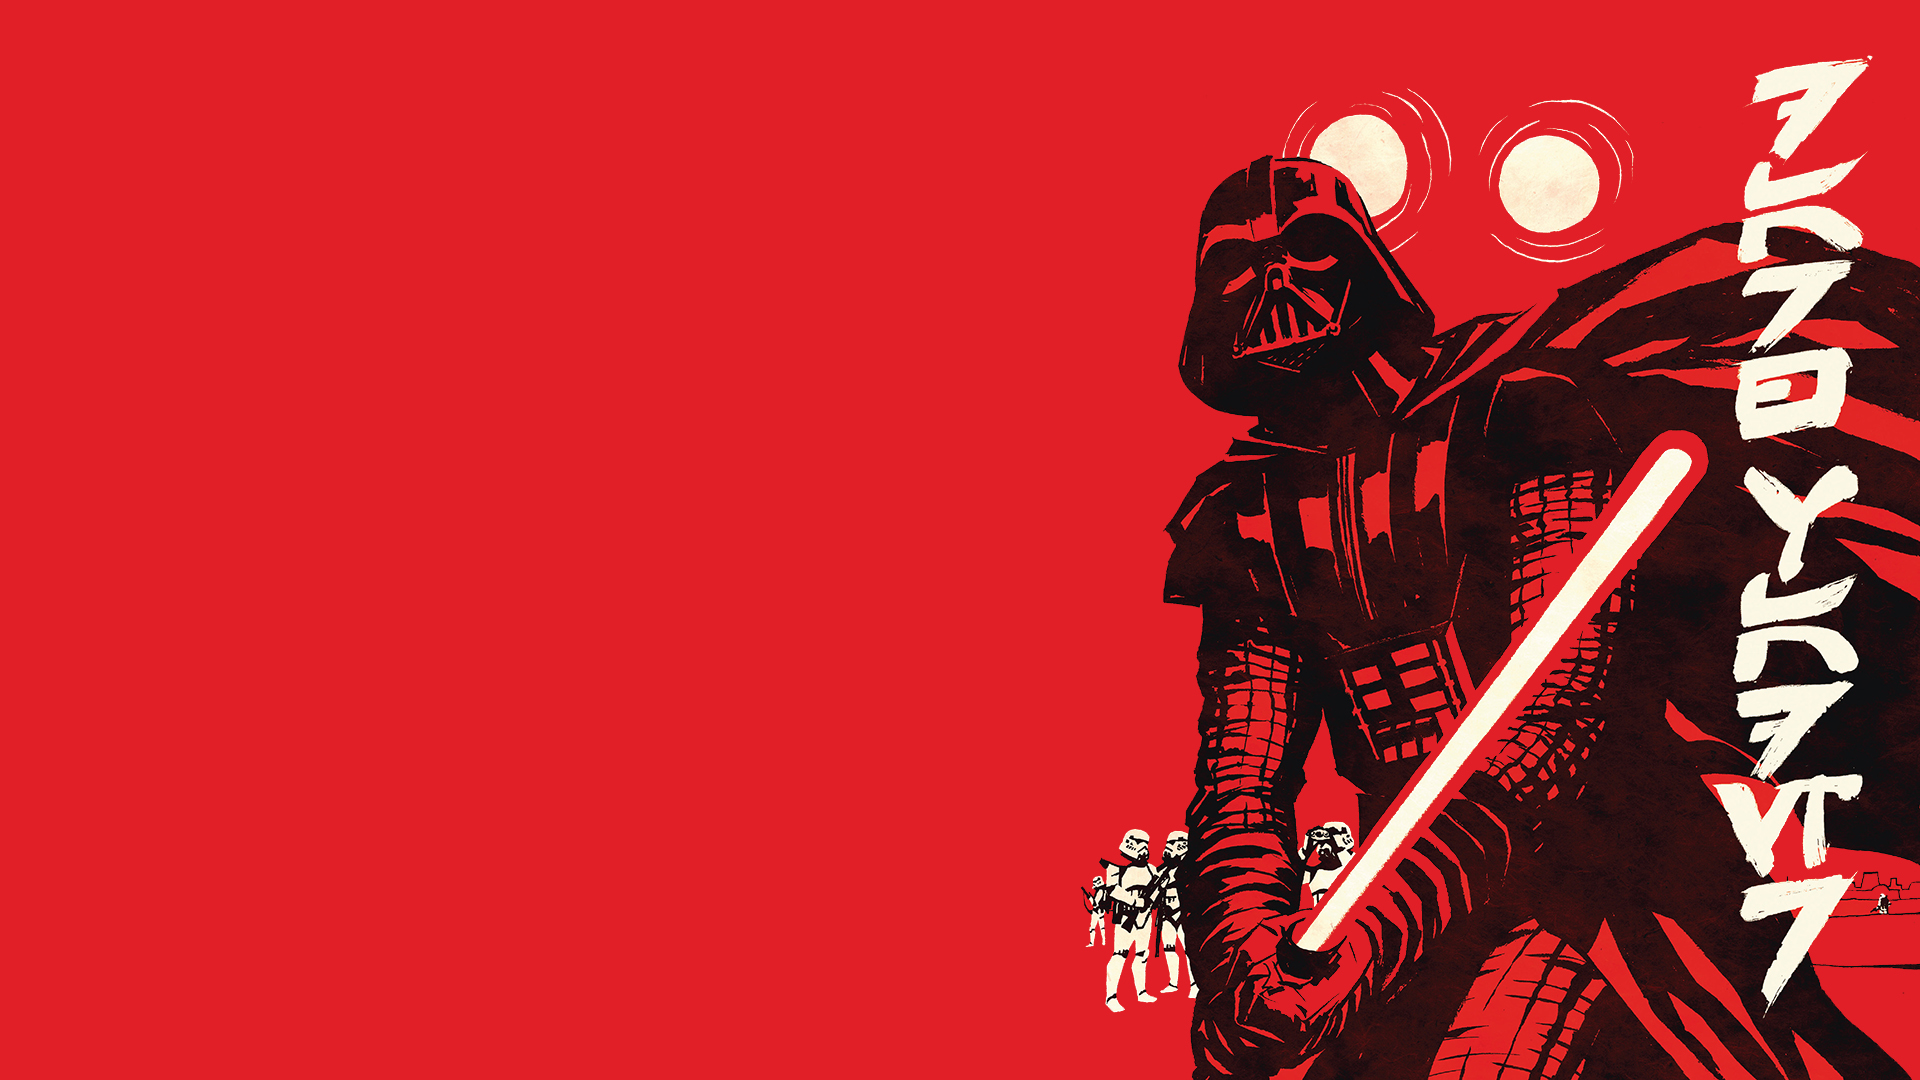 Darth Vader 25 Variant Cover Hd Wallpaper Background Image 1920x1080 Id 887600 Wallpaper Abyss